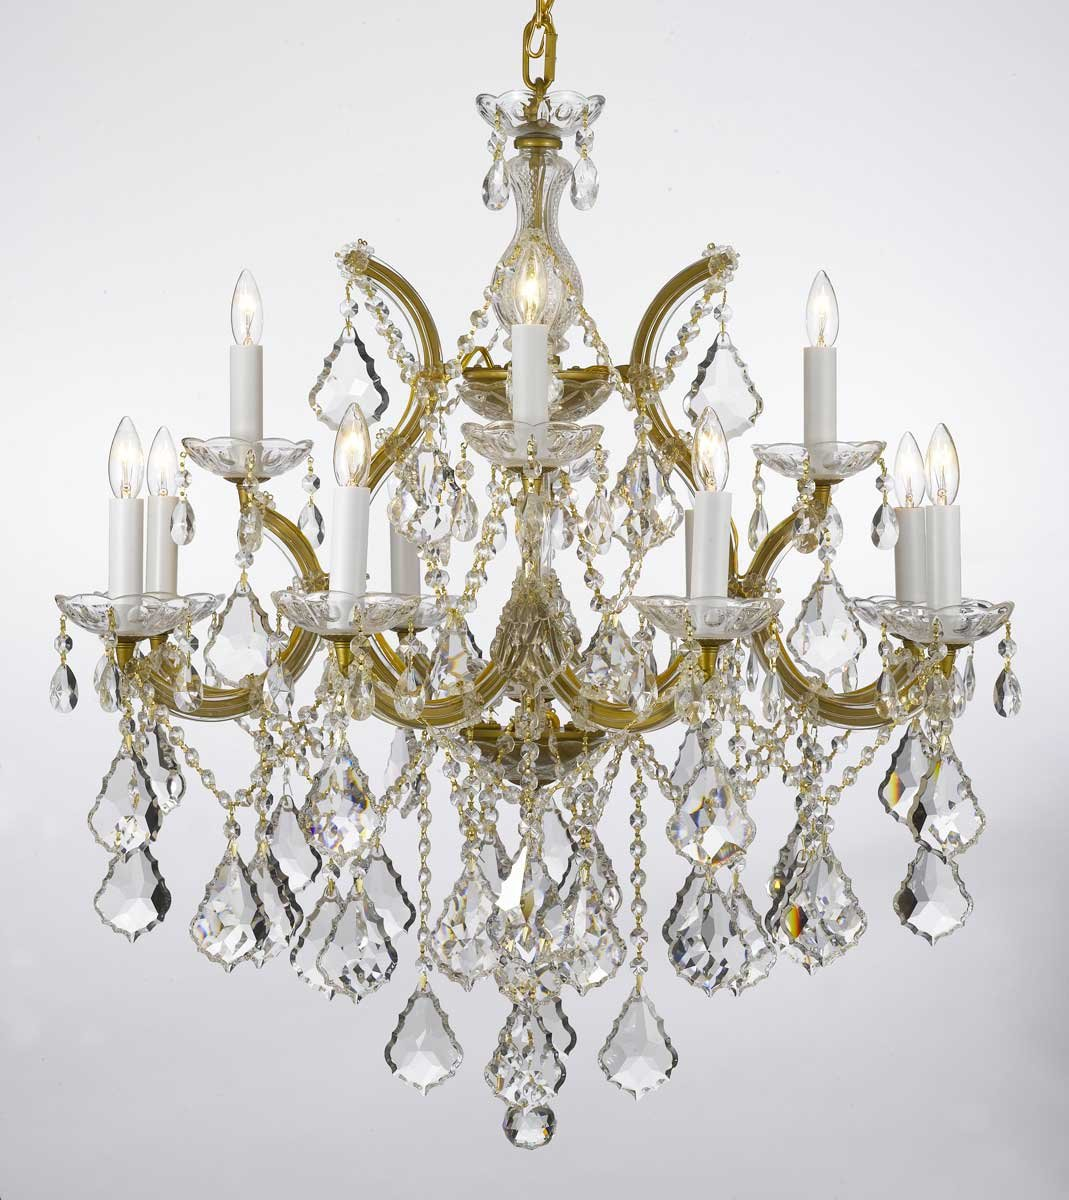 Maria Theresa Chandelier Lighting Crystal Chandeliers H30